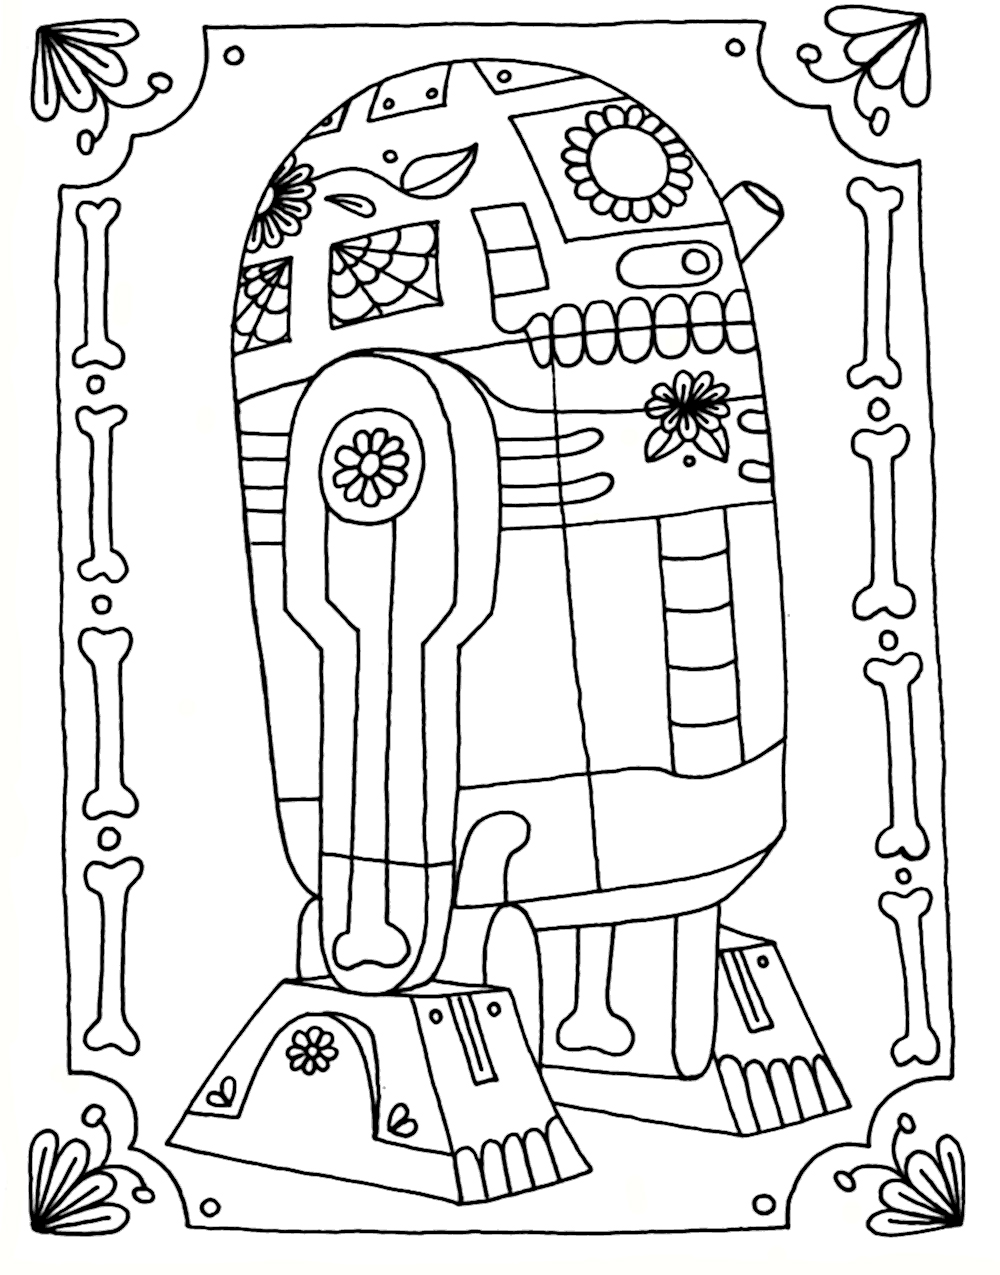 r2d2 coloring pages - photo #36